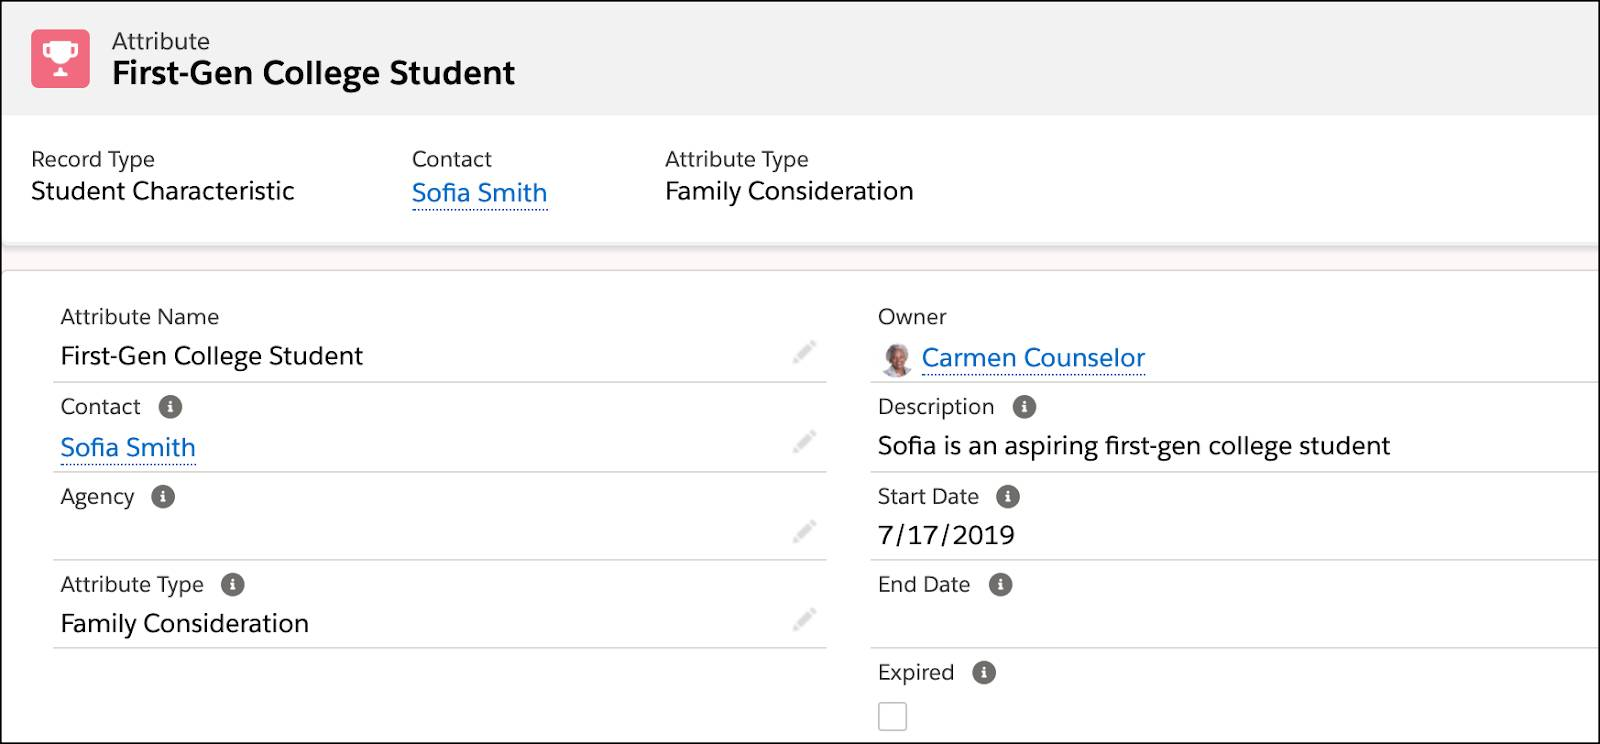 Attribute record for First-Gen College Student